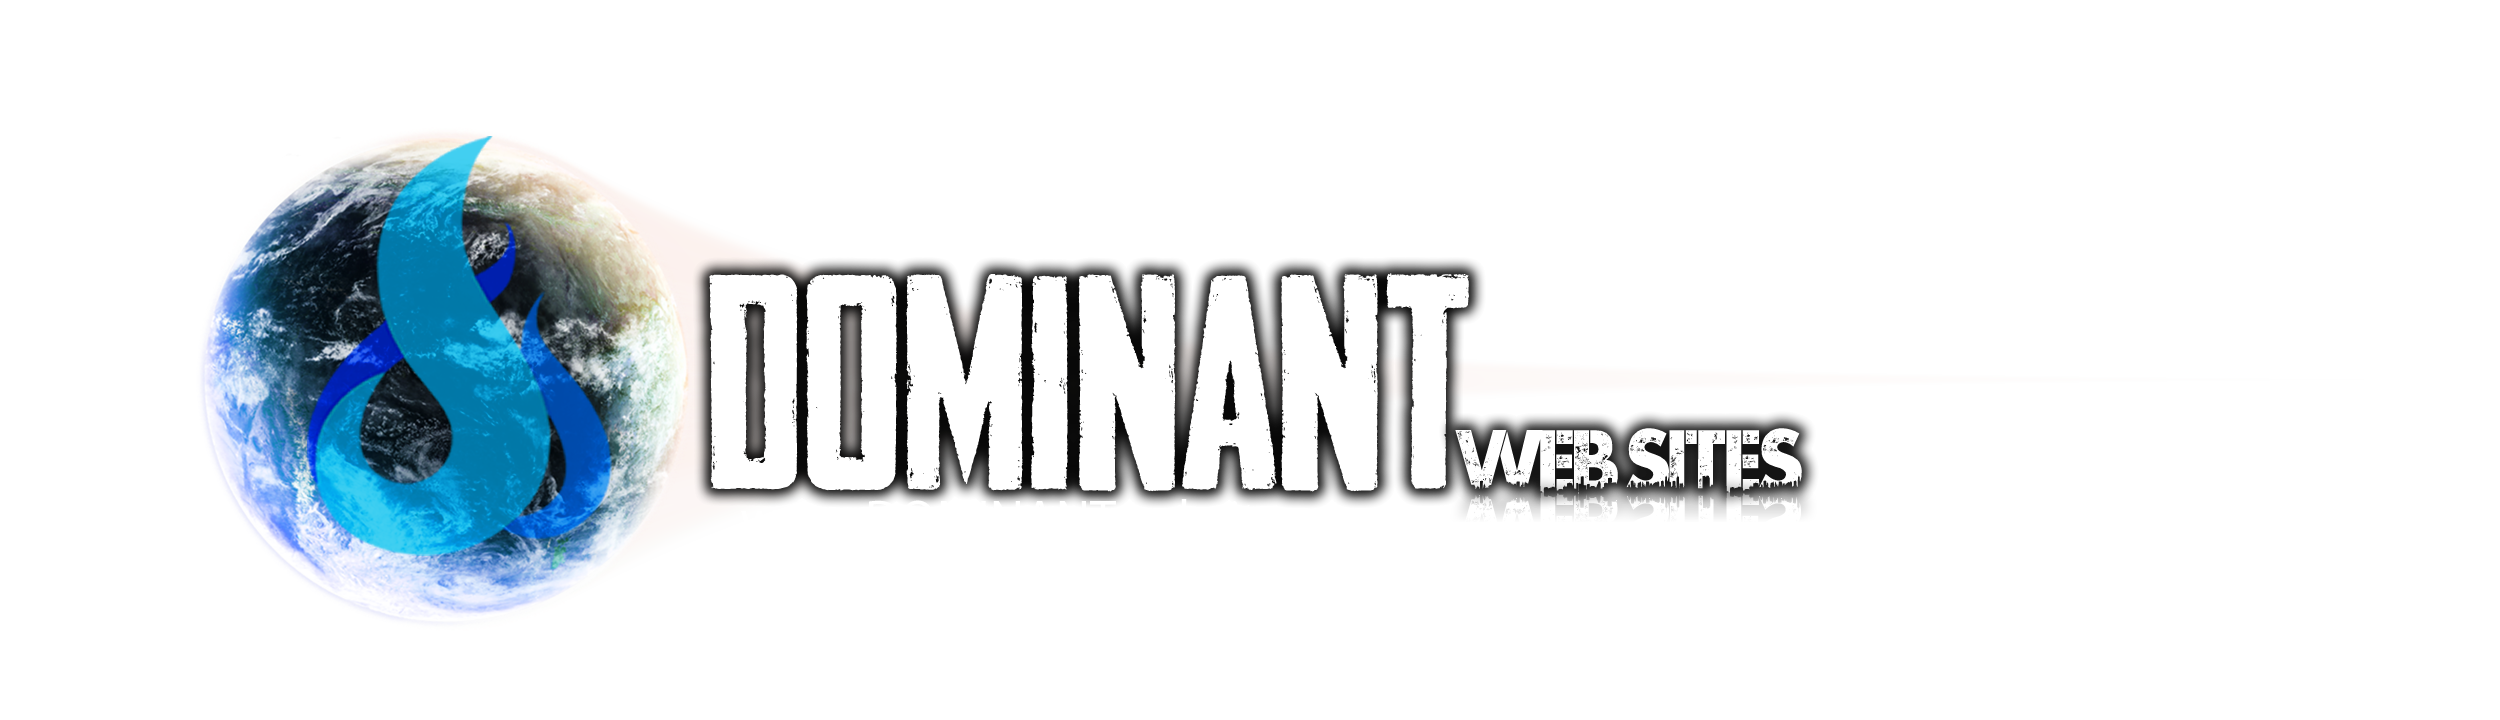 DOMINANTwebsites Logo | DOMINANTwebsites.com